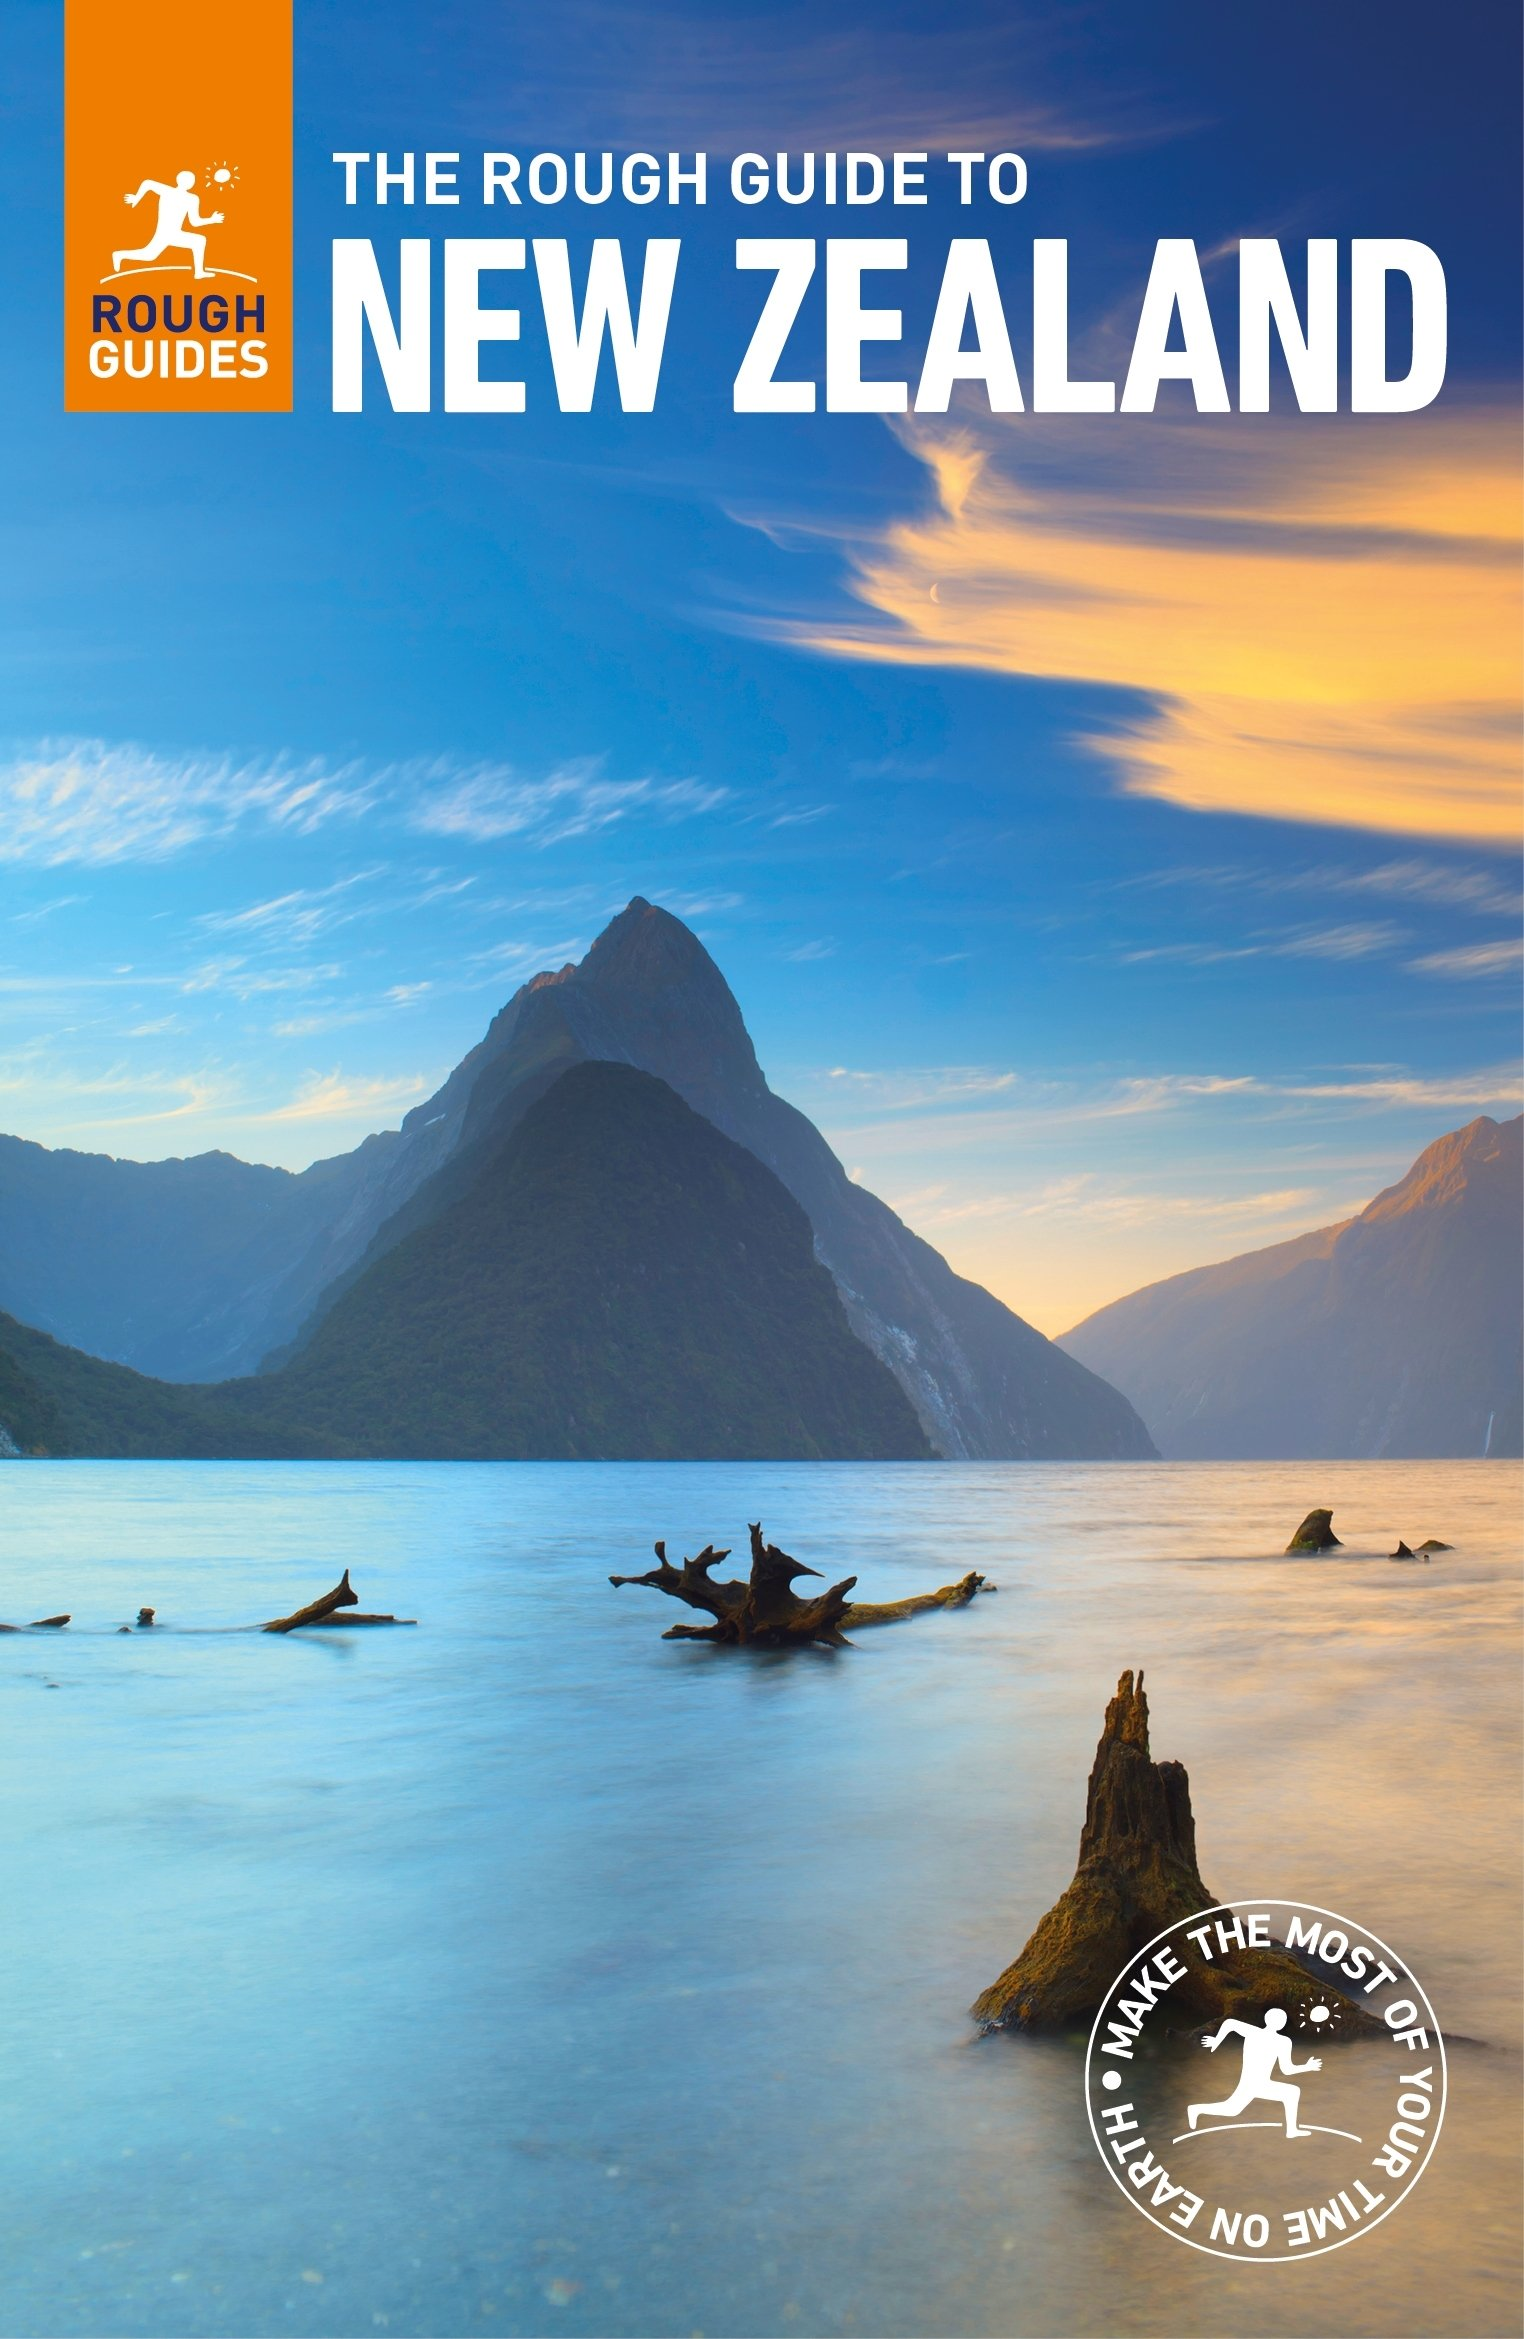 Rough Guide New Zealand 9780241311660  Rough Guide Rough Guides  Reisgidsen Nieuw Zeeland